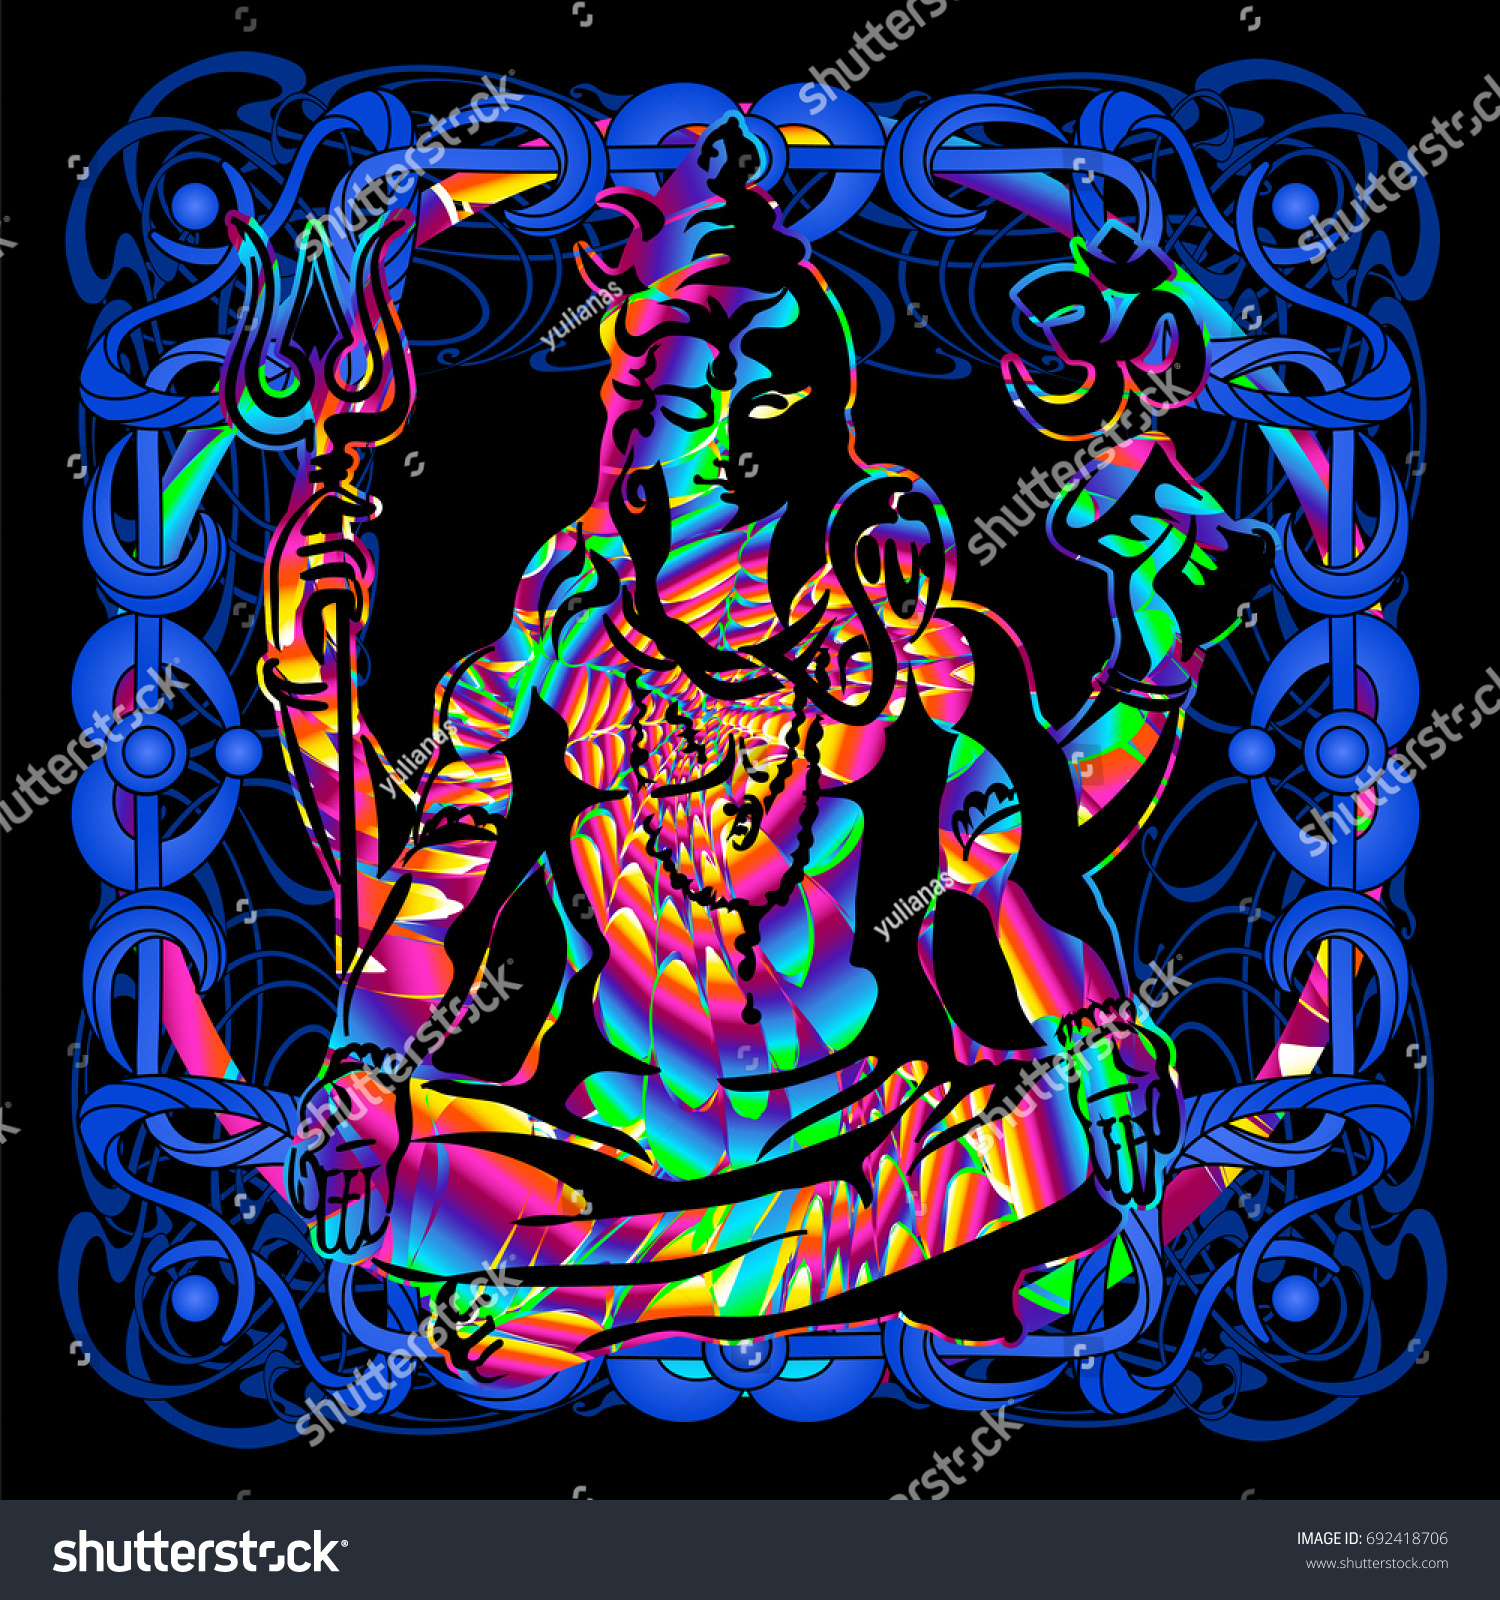 The lord shiva is a psychedelic painting in a retro style popular vintage graphics postcard